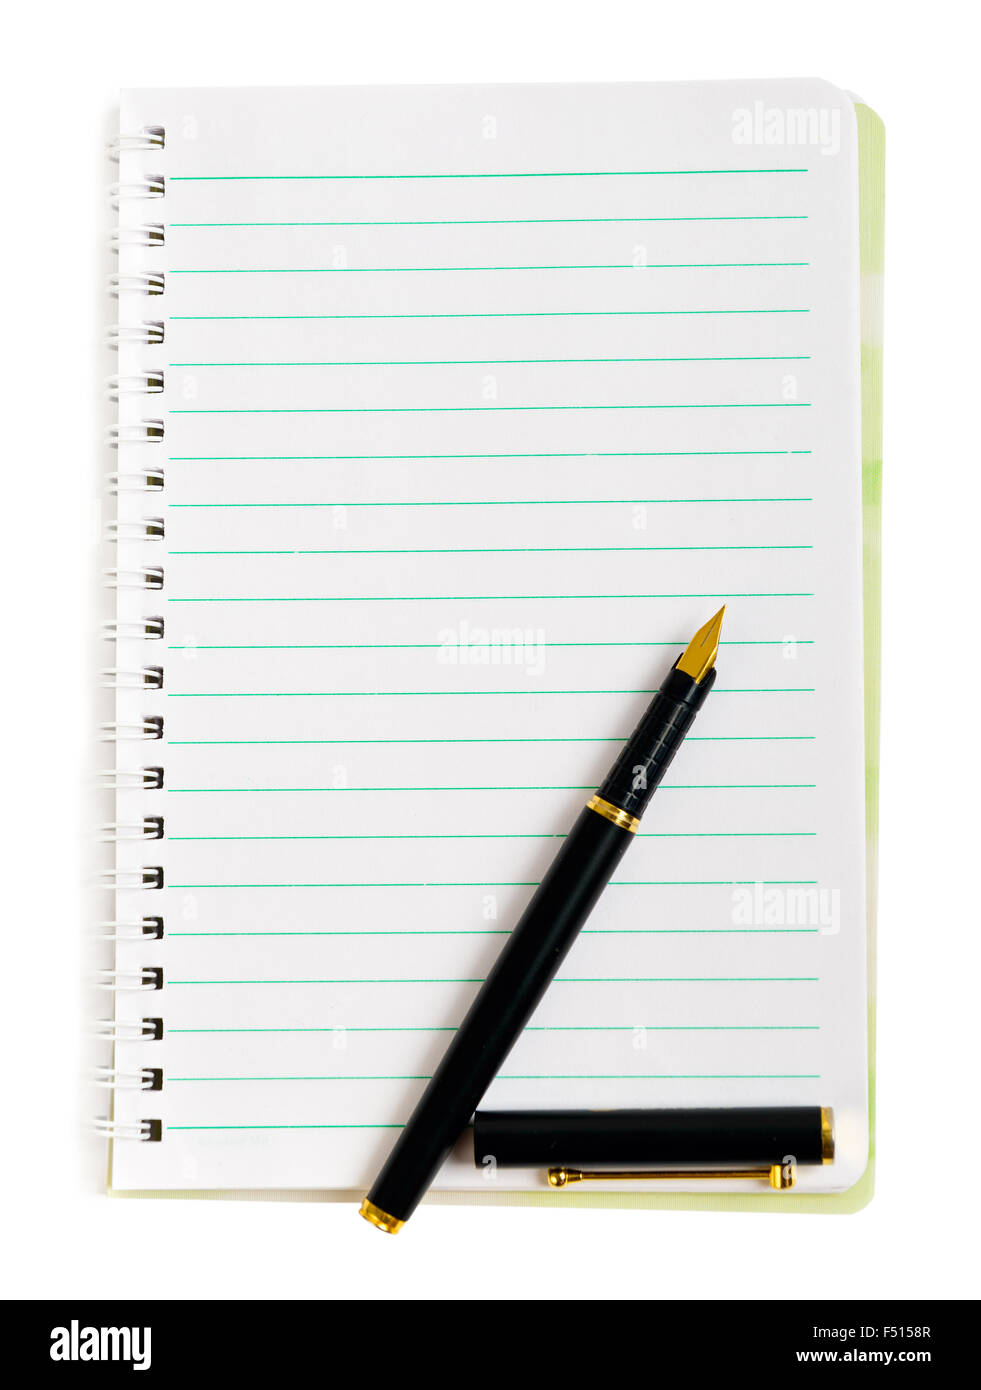 Ink pen on lined notepad paper isolated on white - Stock Image